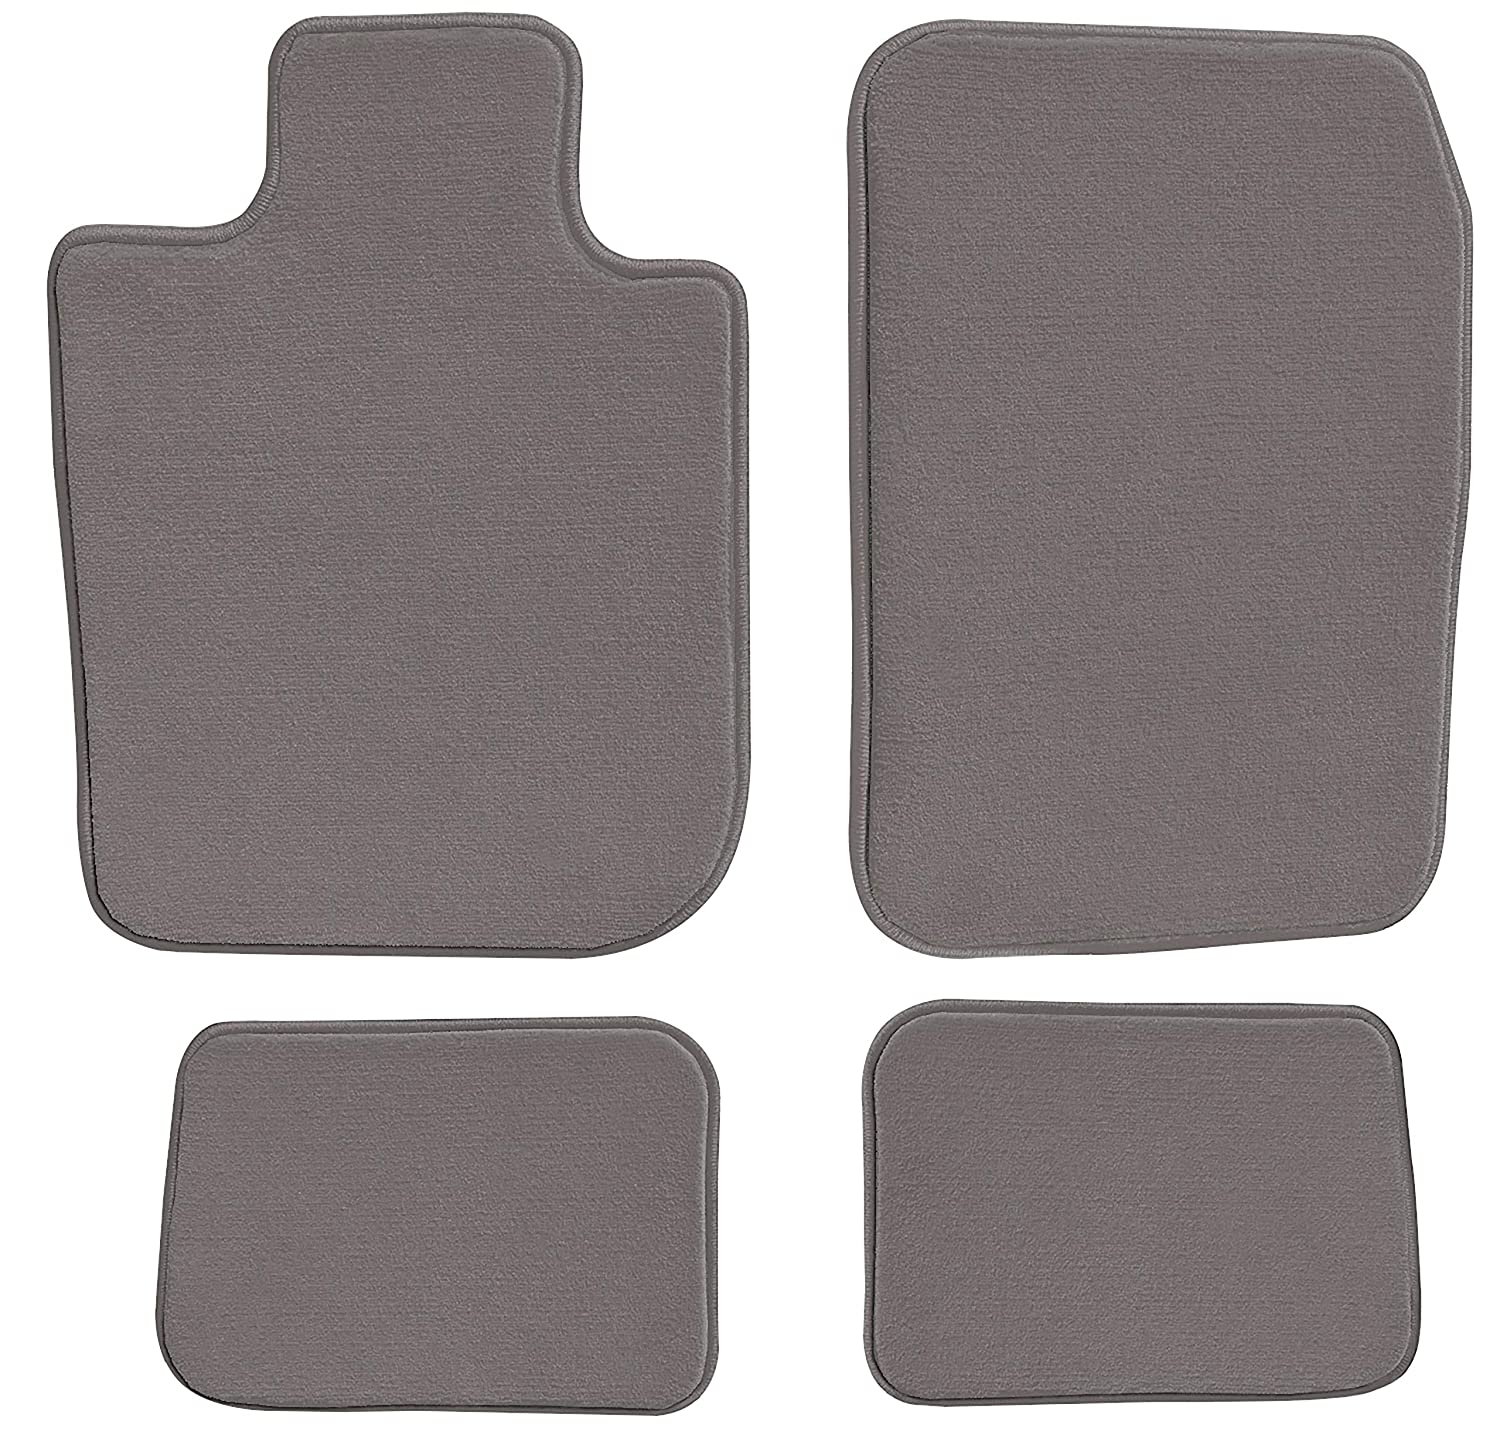 GGBAILEY D3958A-S1A-GY-LP Custom Fit Car Mats for 2011 2012 2013 Passenger /& Rear Floor 2014 Chrysler 200 Sedan Grey Loop Driver